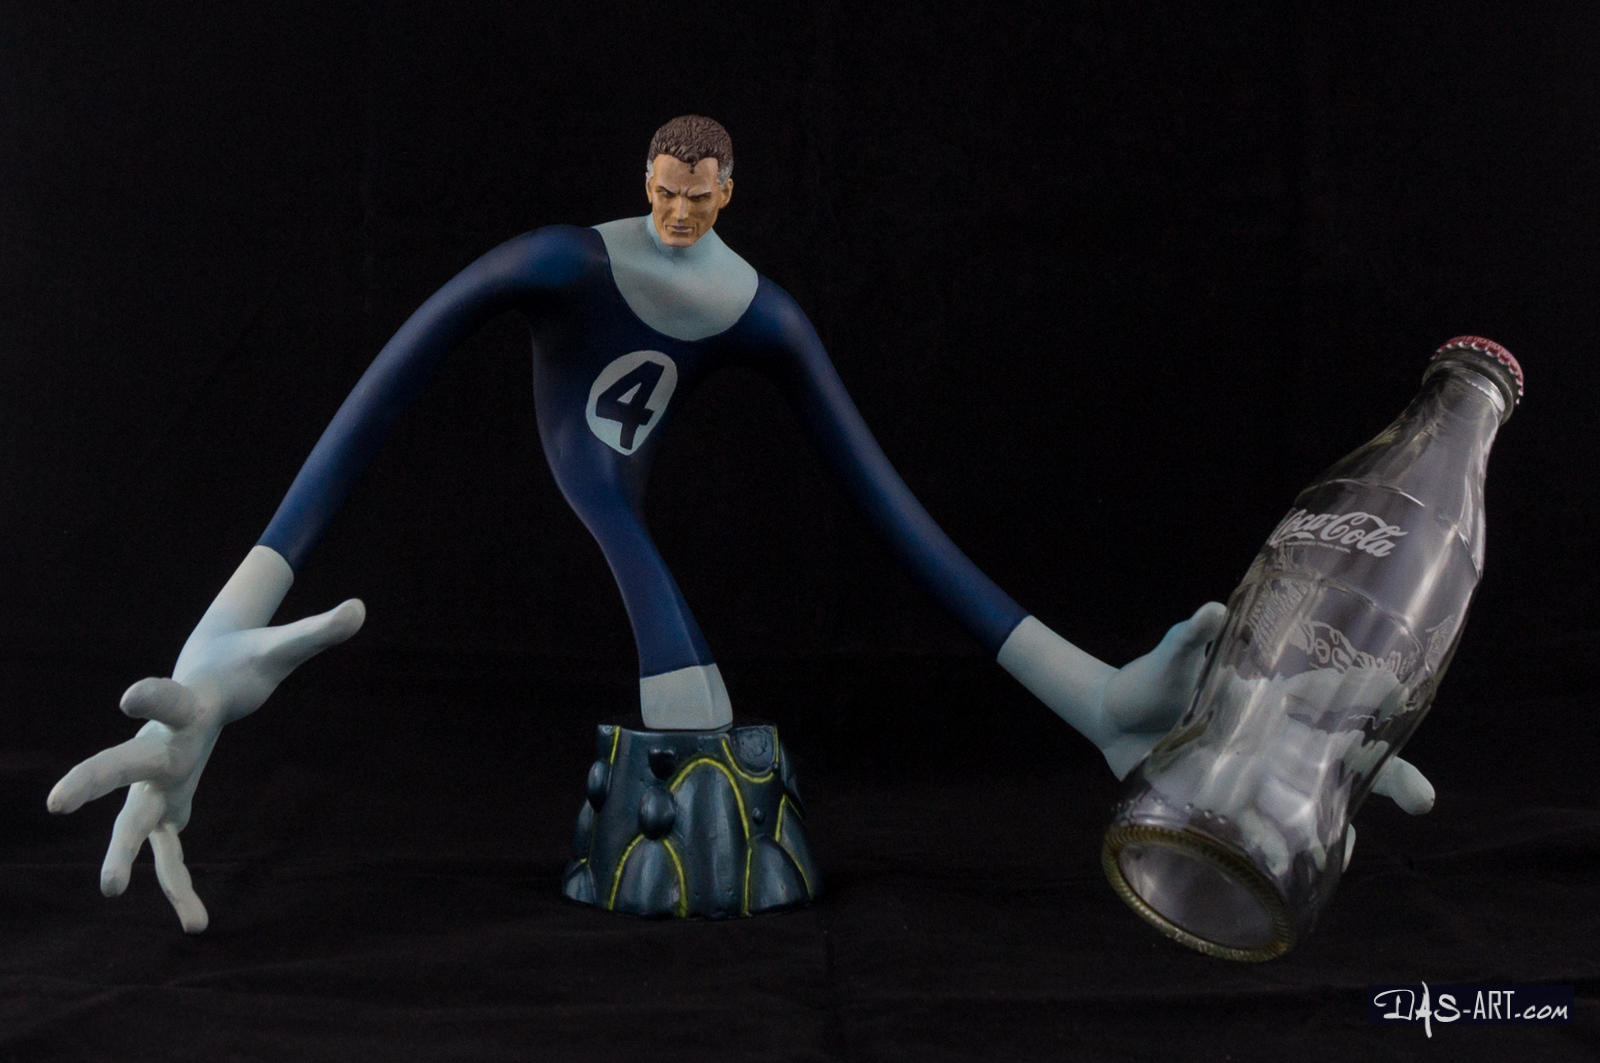 [Garage kit painting #17] Mr. Fantastic bust - 017 by DasArt